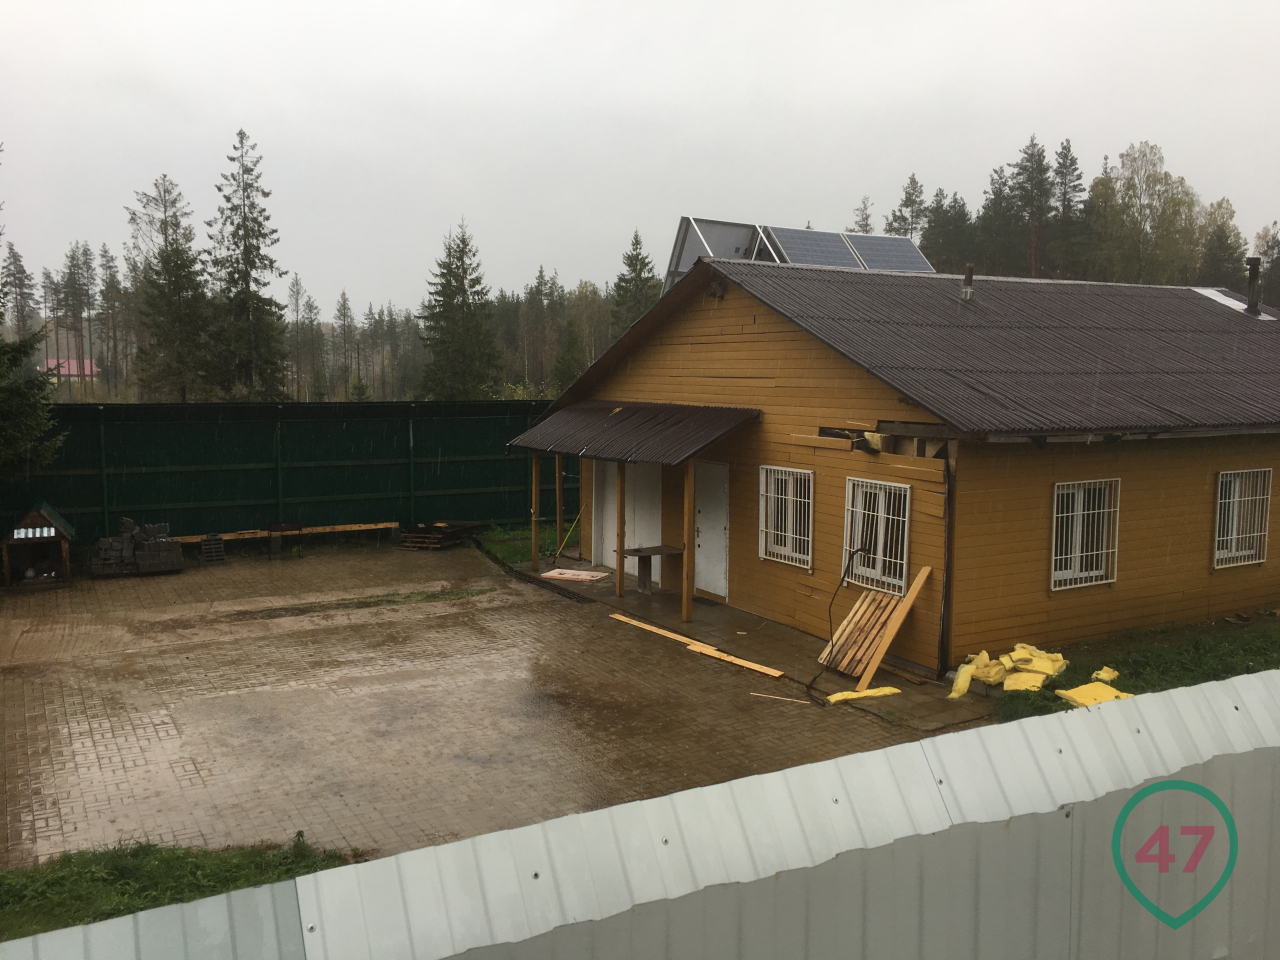 View of the courtyard and the house. Next to the dog booth